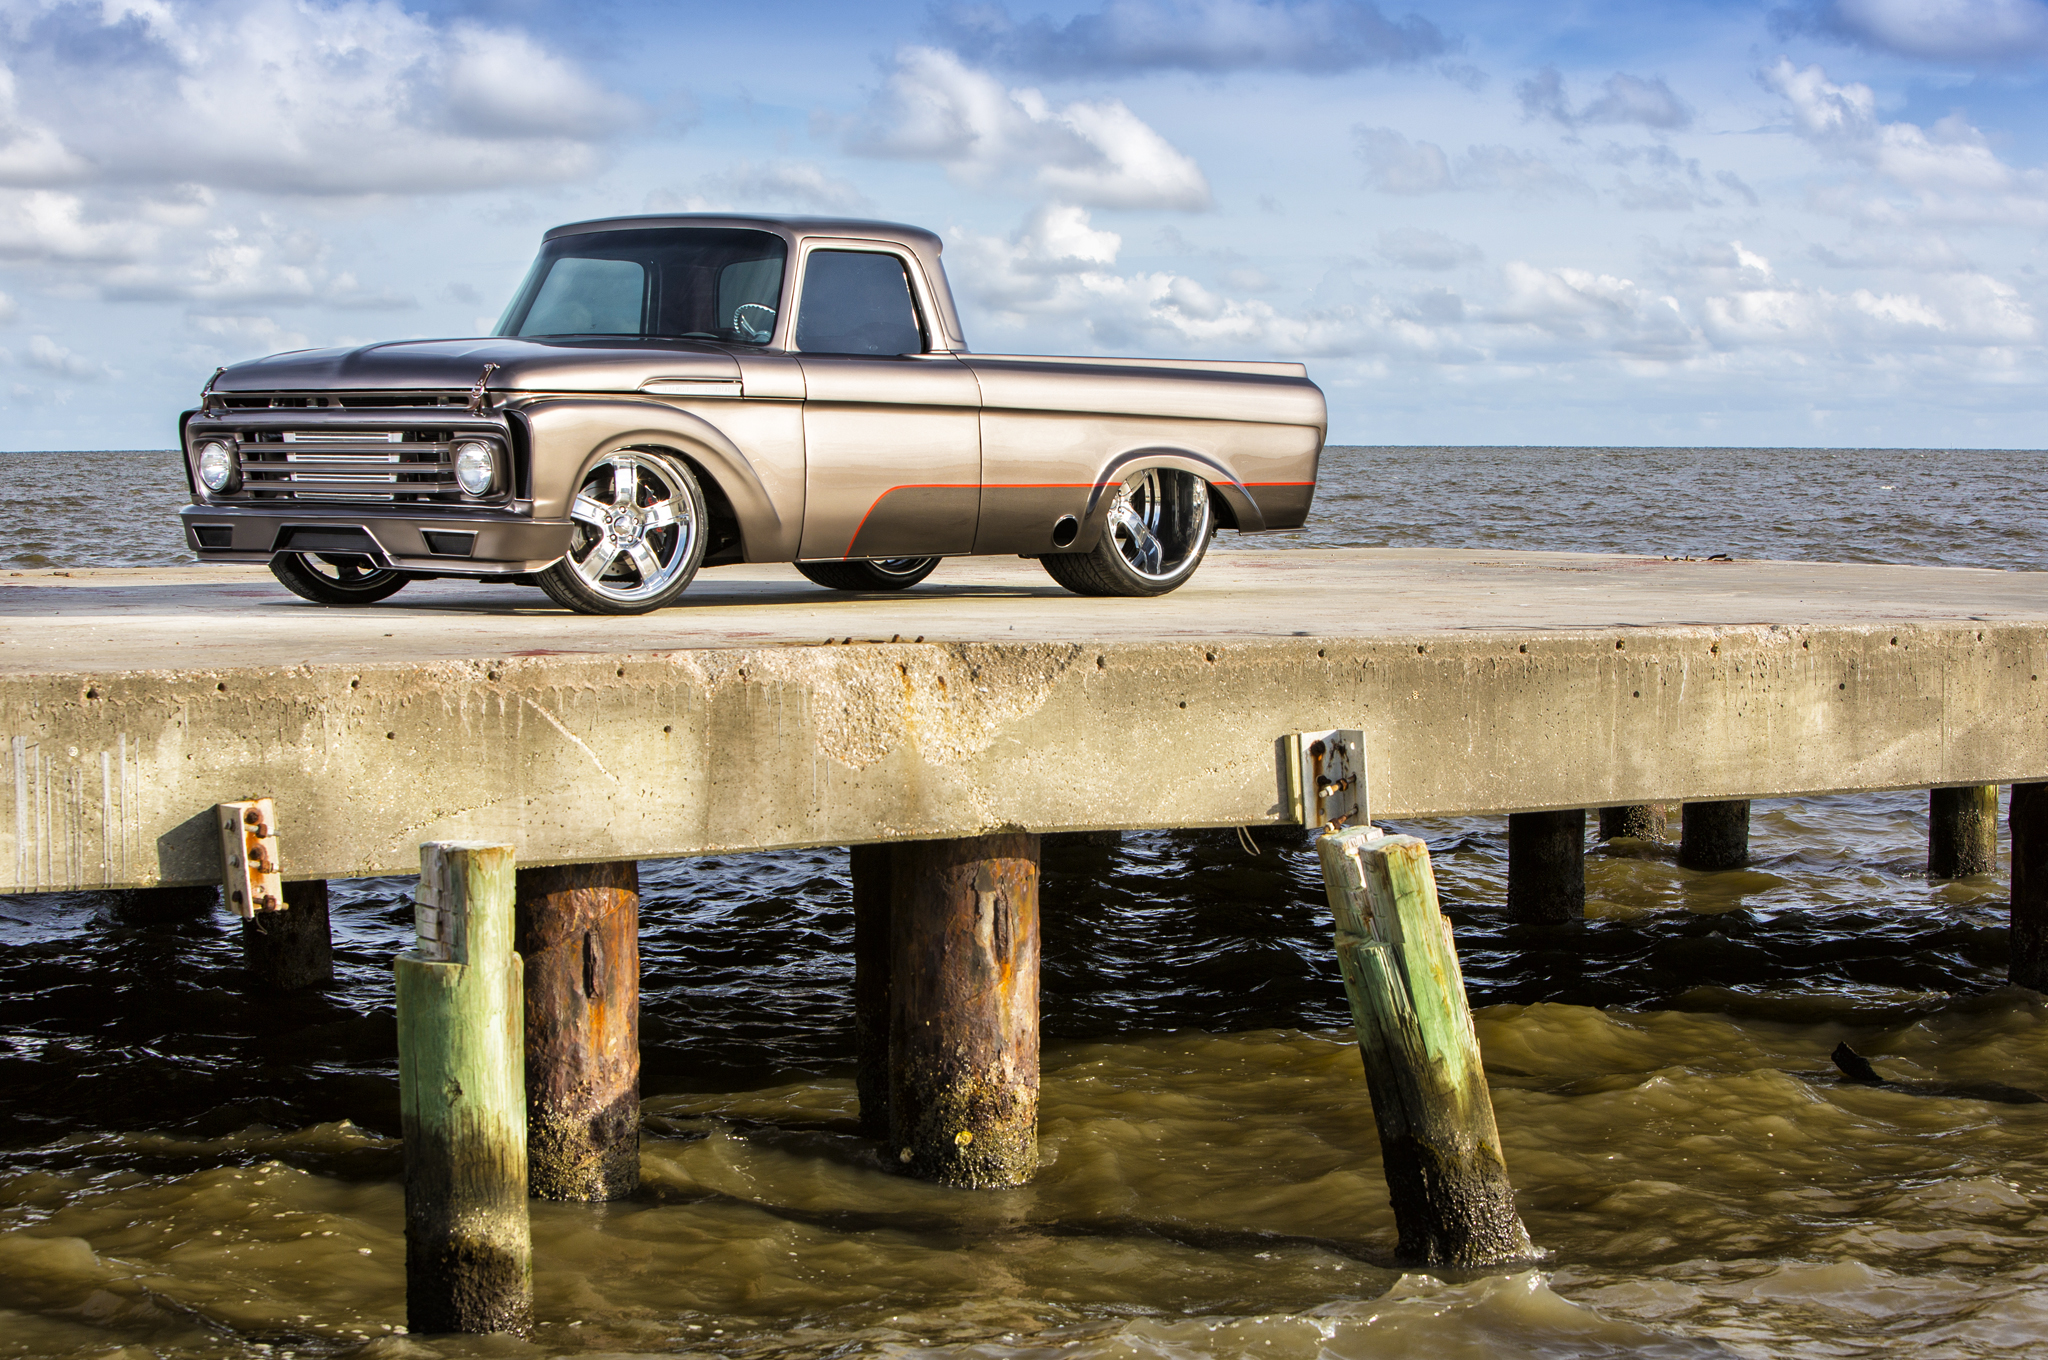 Weaver Customs sprayed the 1962 F-100 in a metallic Chai Bronze and Silverstone Gray two-tone with a Laser Red pinstripe, all using Axalta paint.